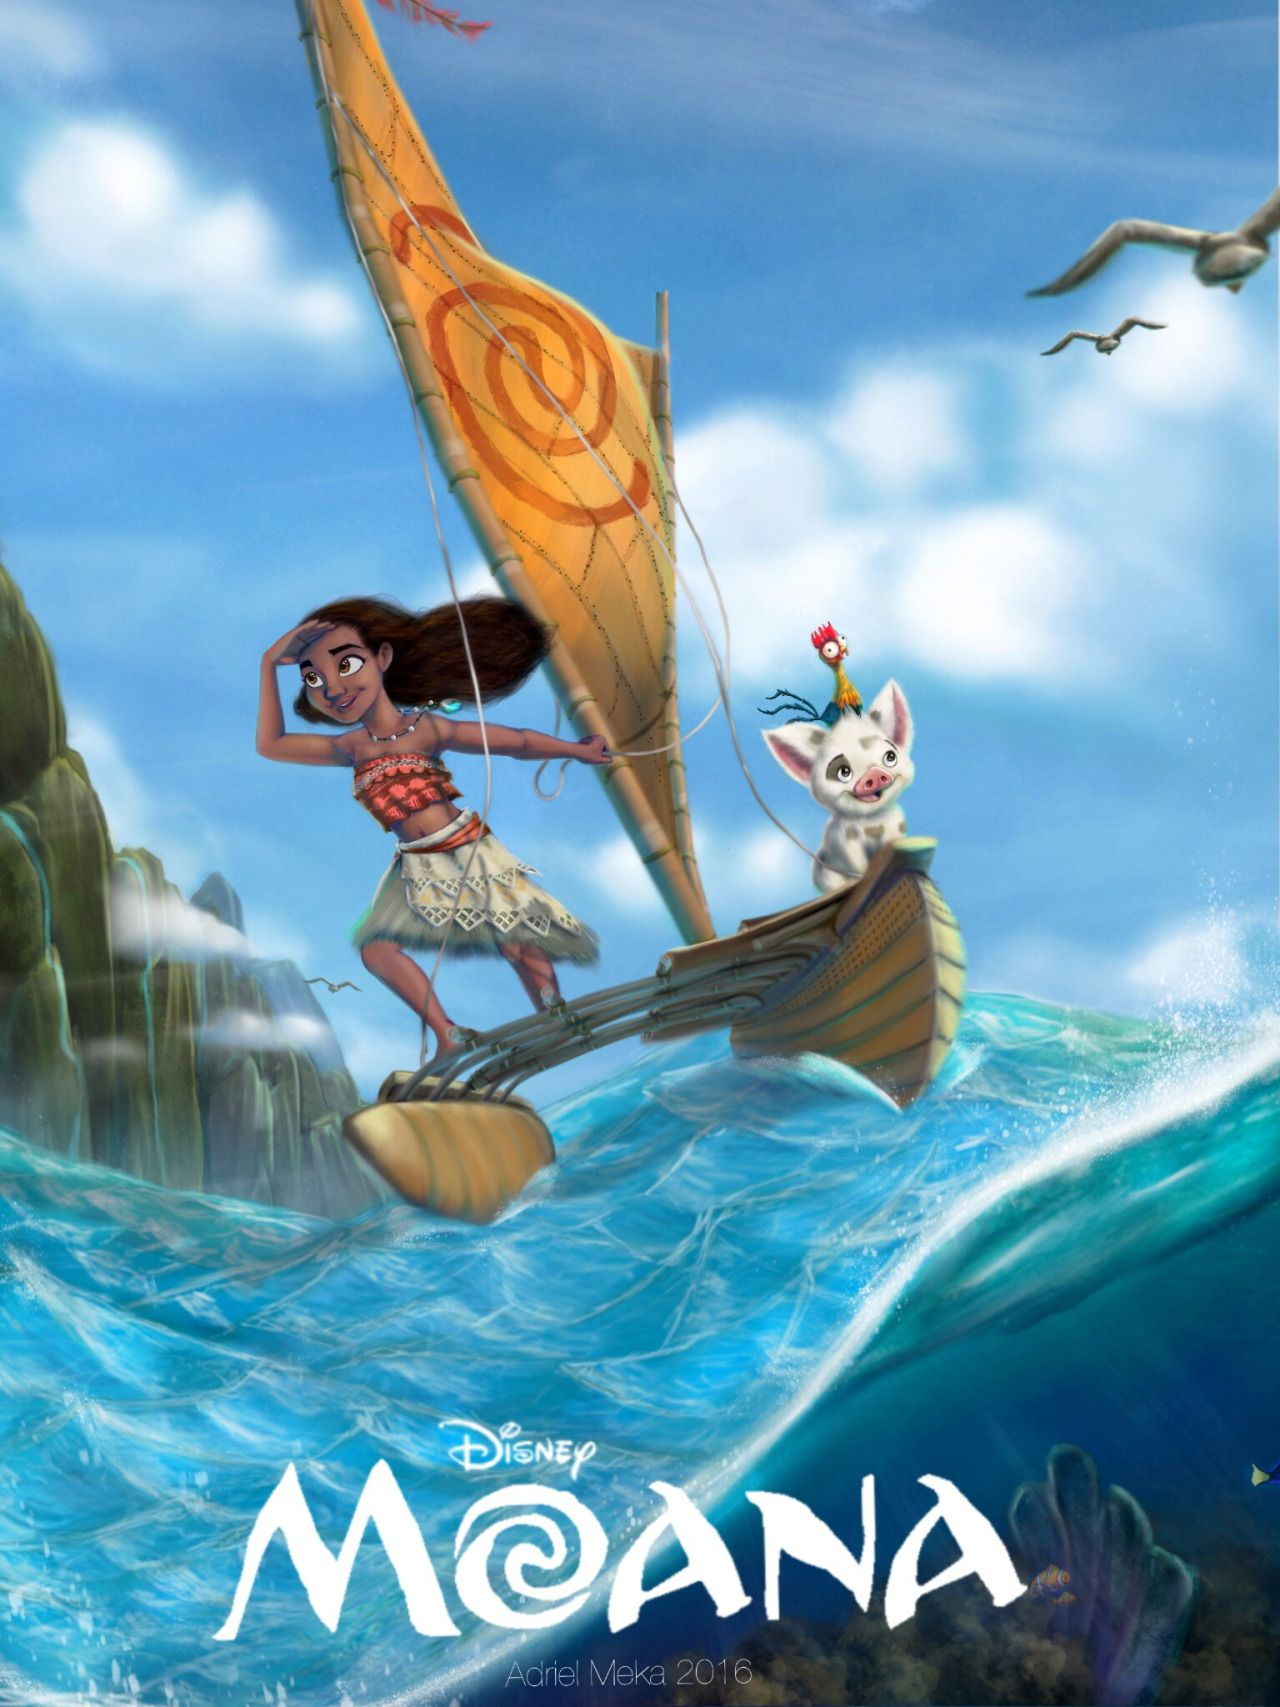 c6686ed9 Finally wrapped up the Moana poster! Here's a digital painting I did for the  upcoming Disney movie. It was a fun project and I'm really happy with how  it ...